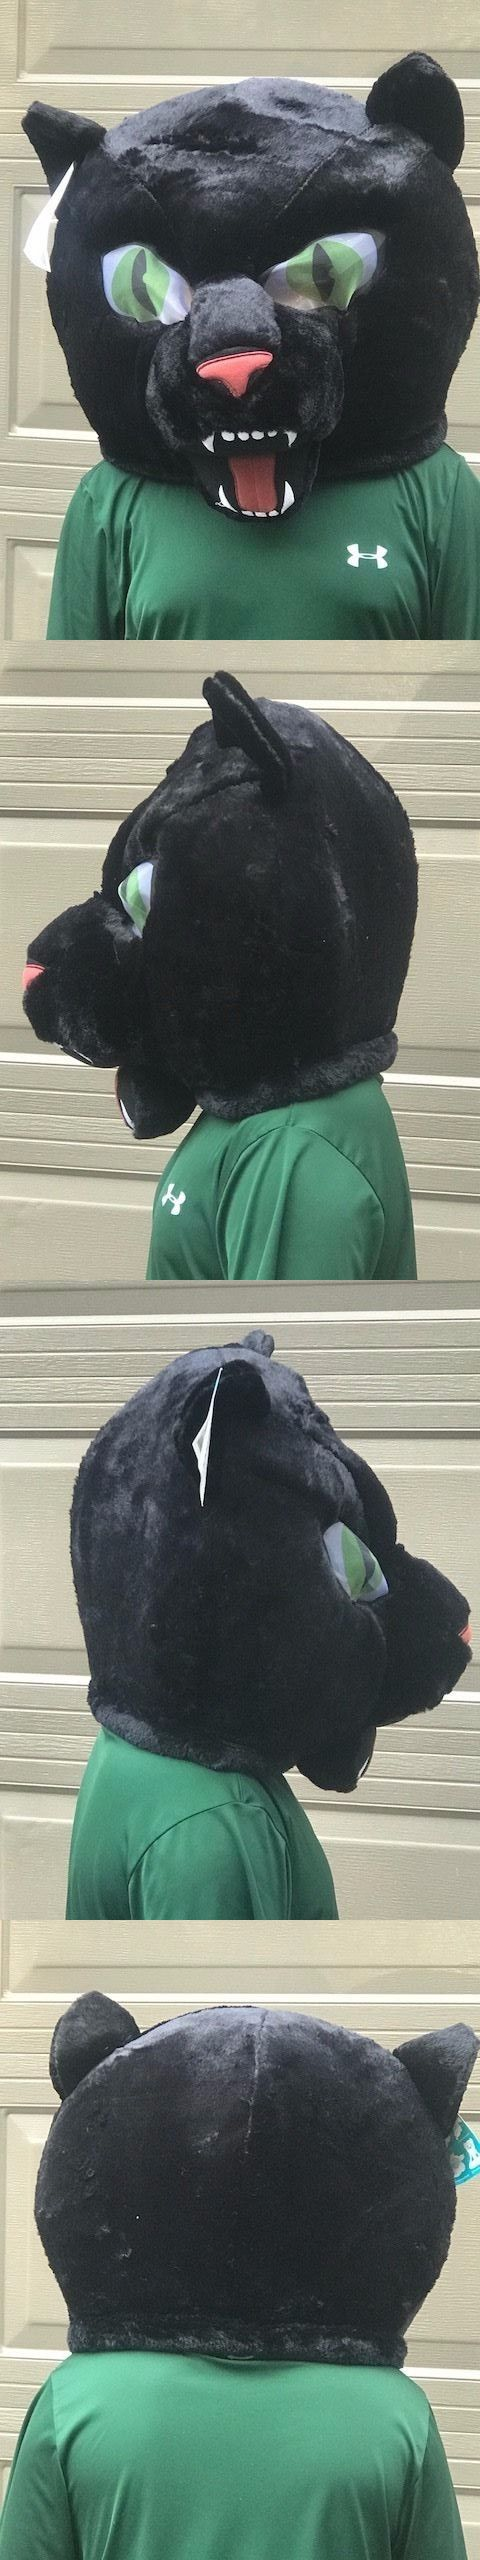 Masks and Eye Masks 116724: Plush Full Head Panther Mask Fan Mascot Furry Costume Halloween Child Teen Adult -> BUY IT NOW ONLY: $41.88 on eBay!